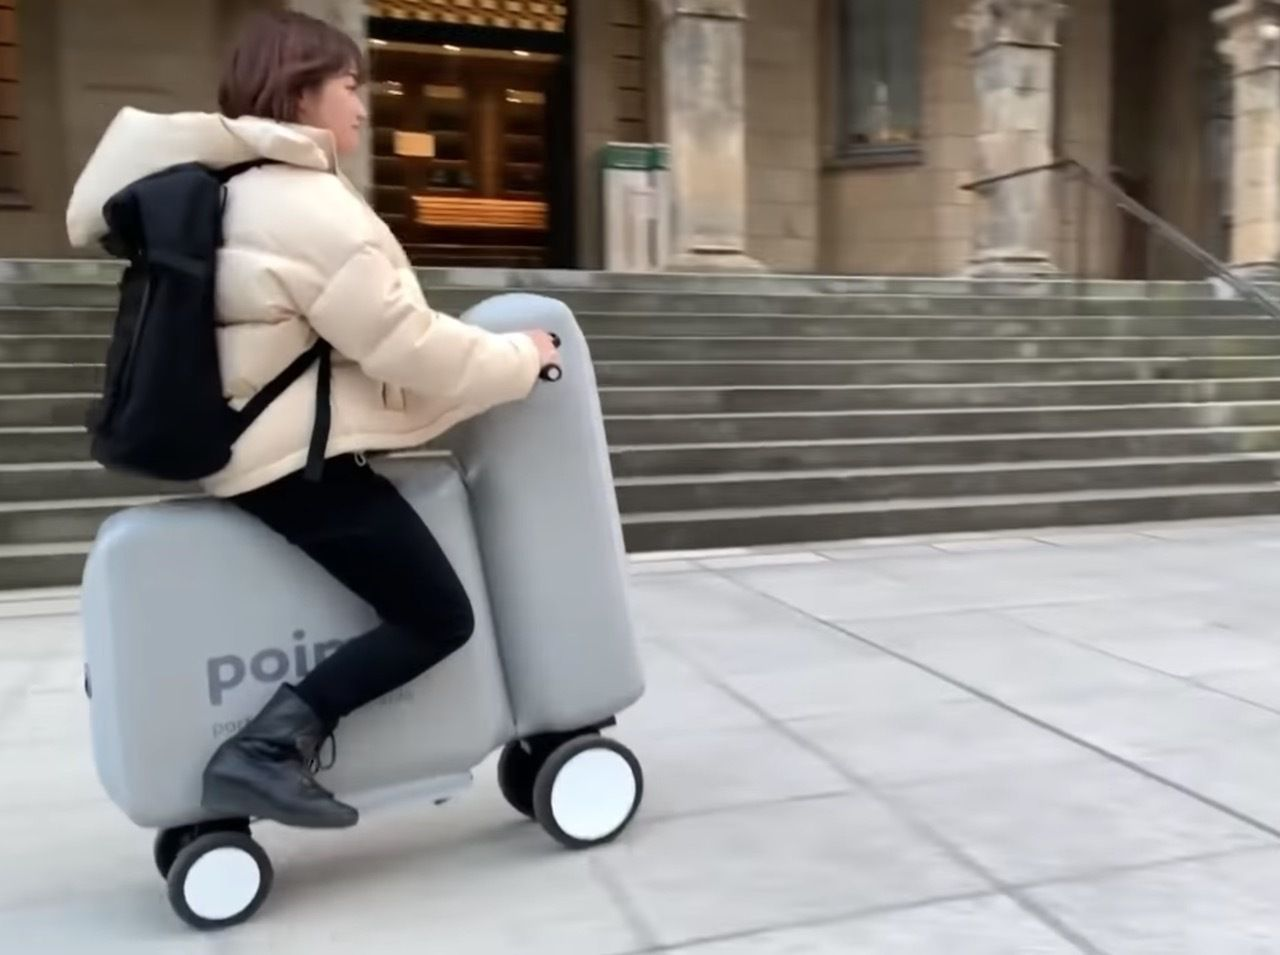 Inflatable, portable Poimo e-bike